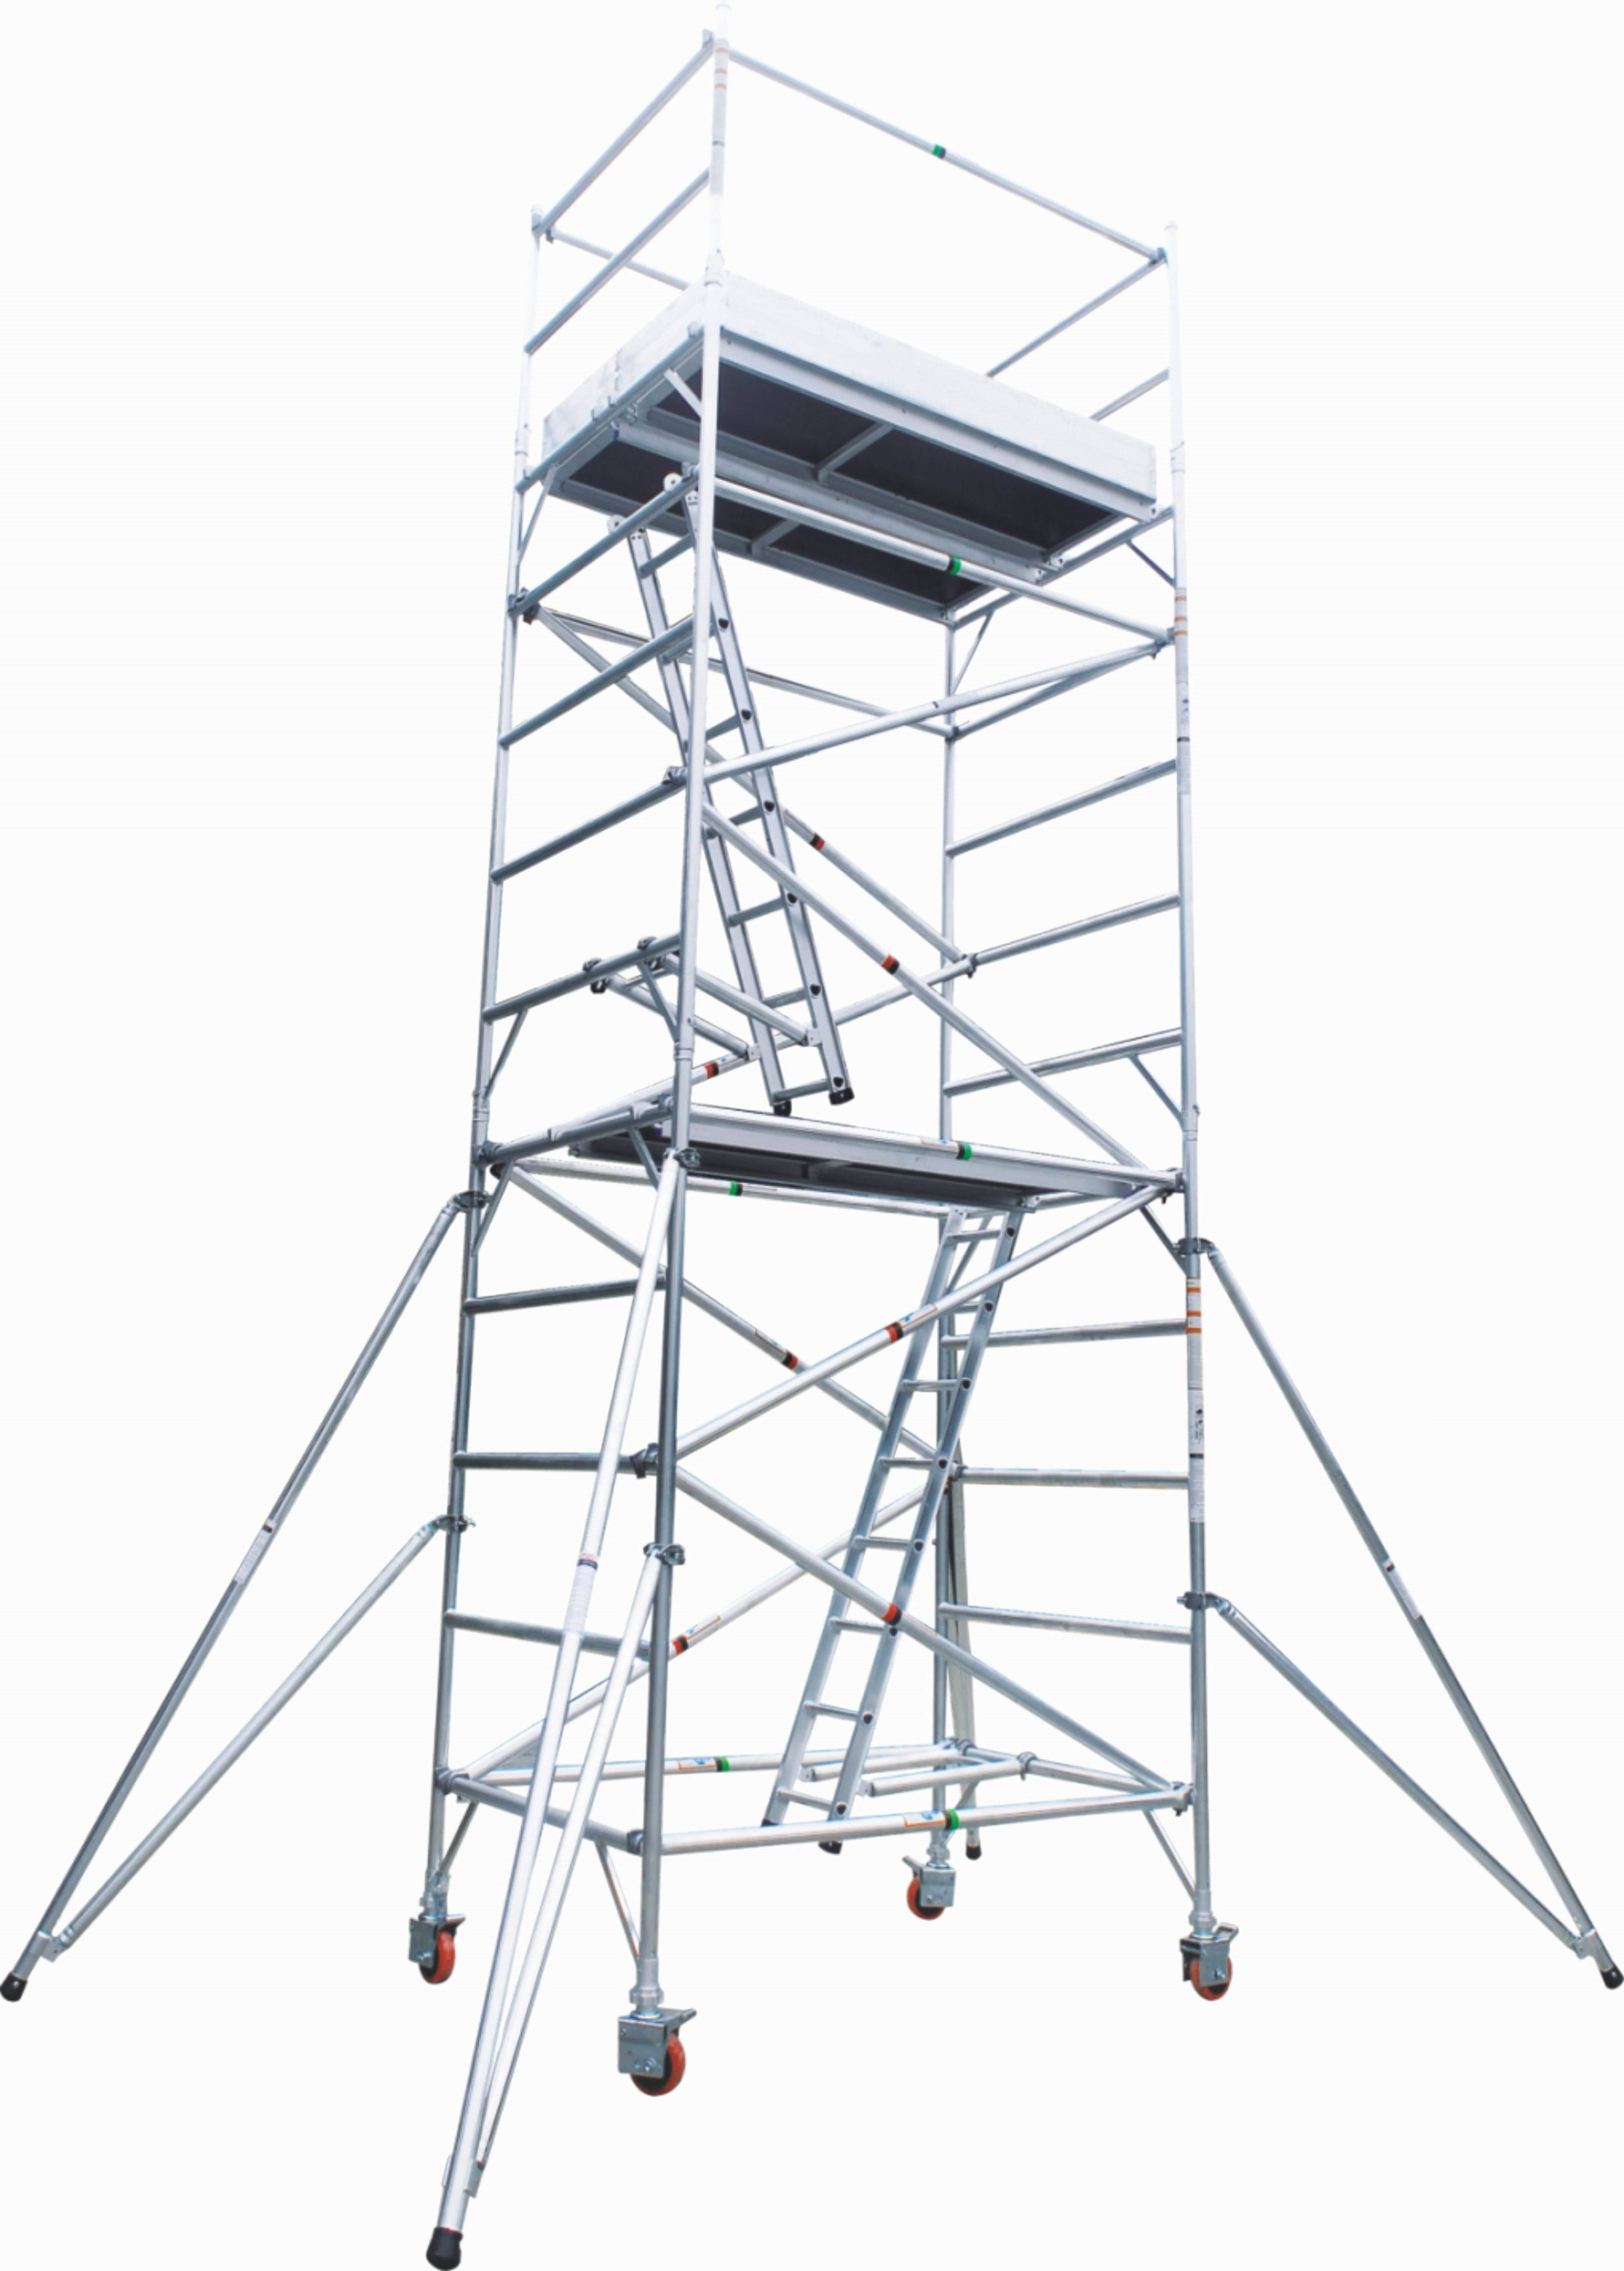 Aluminum Scaffold Tower : Aluminum scaffold tower manufacturer supplier exporter